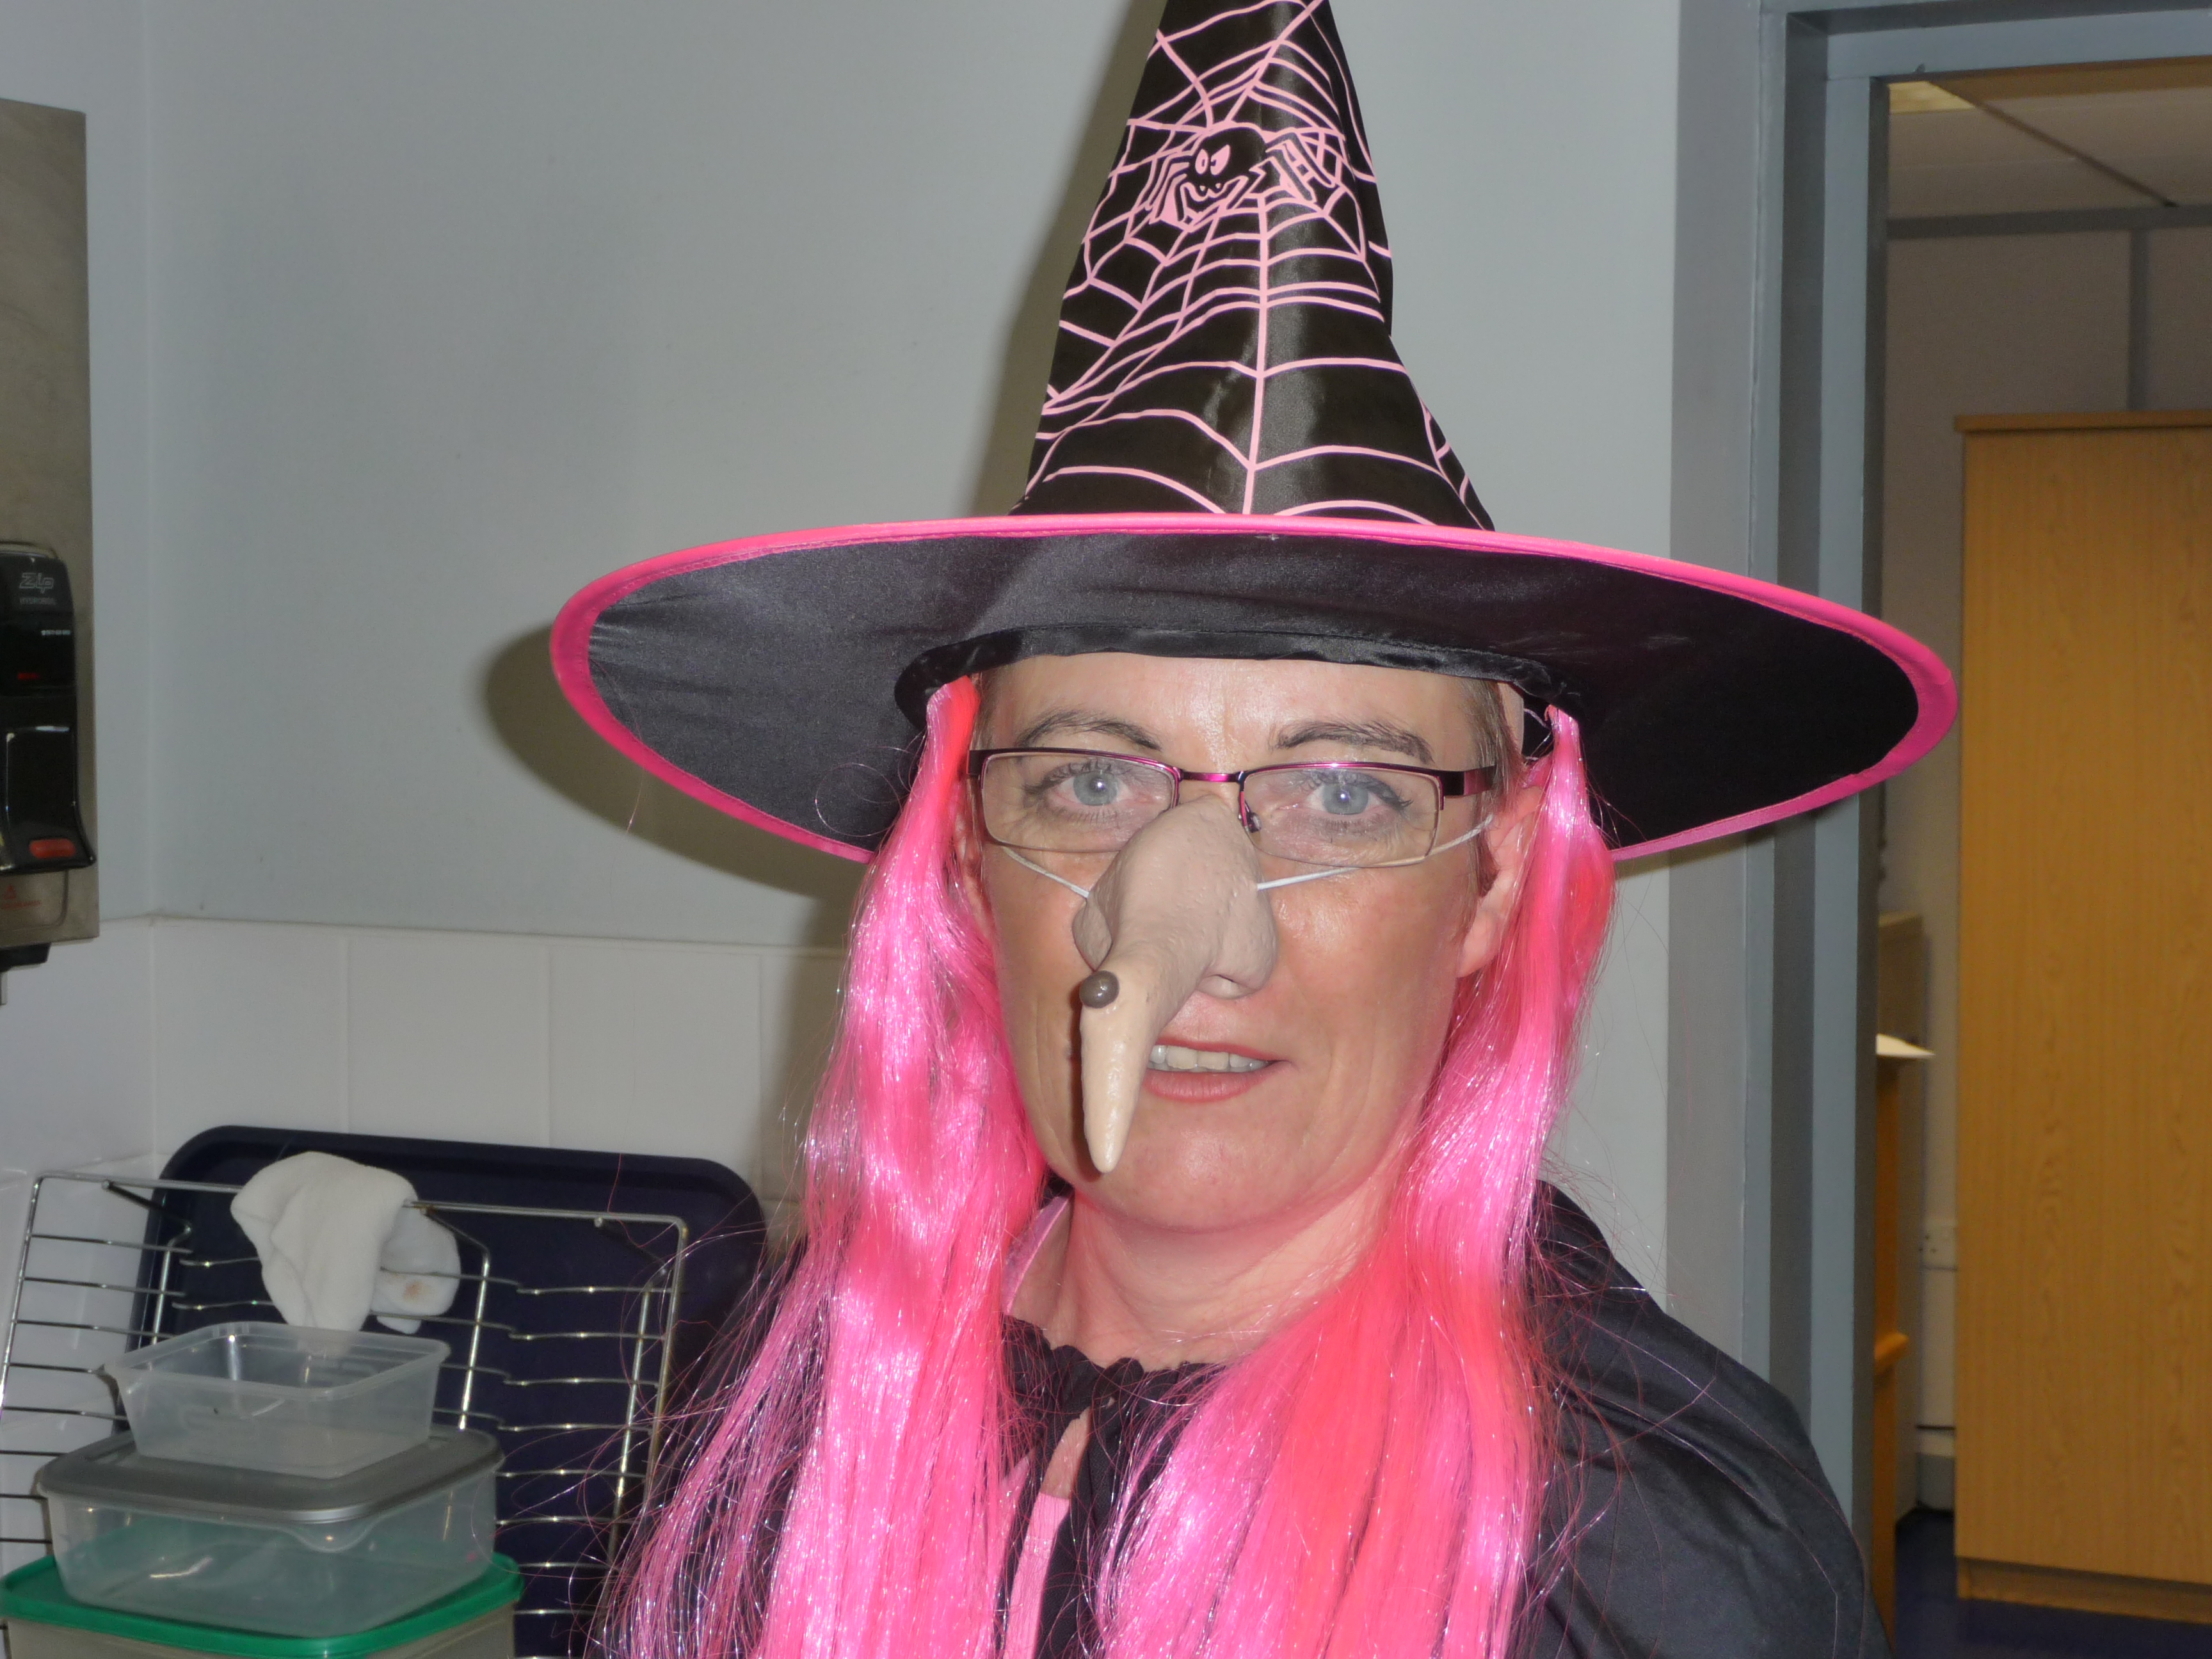 A pink witch